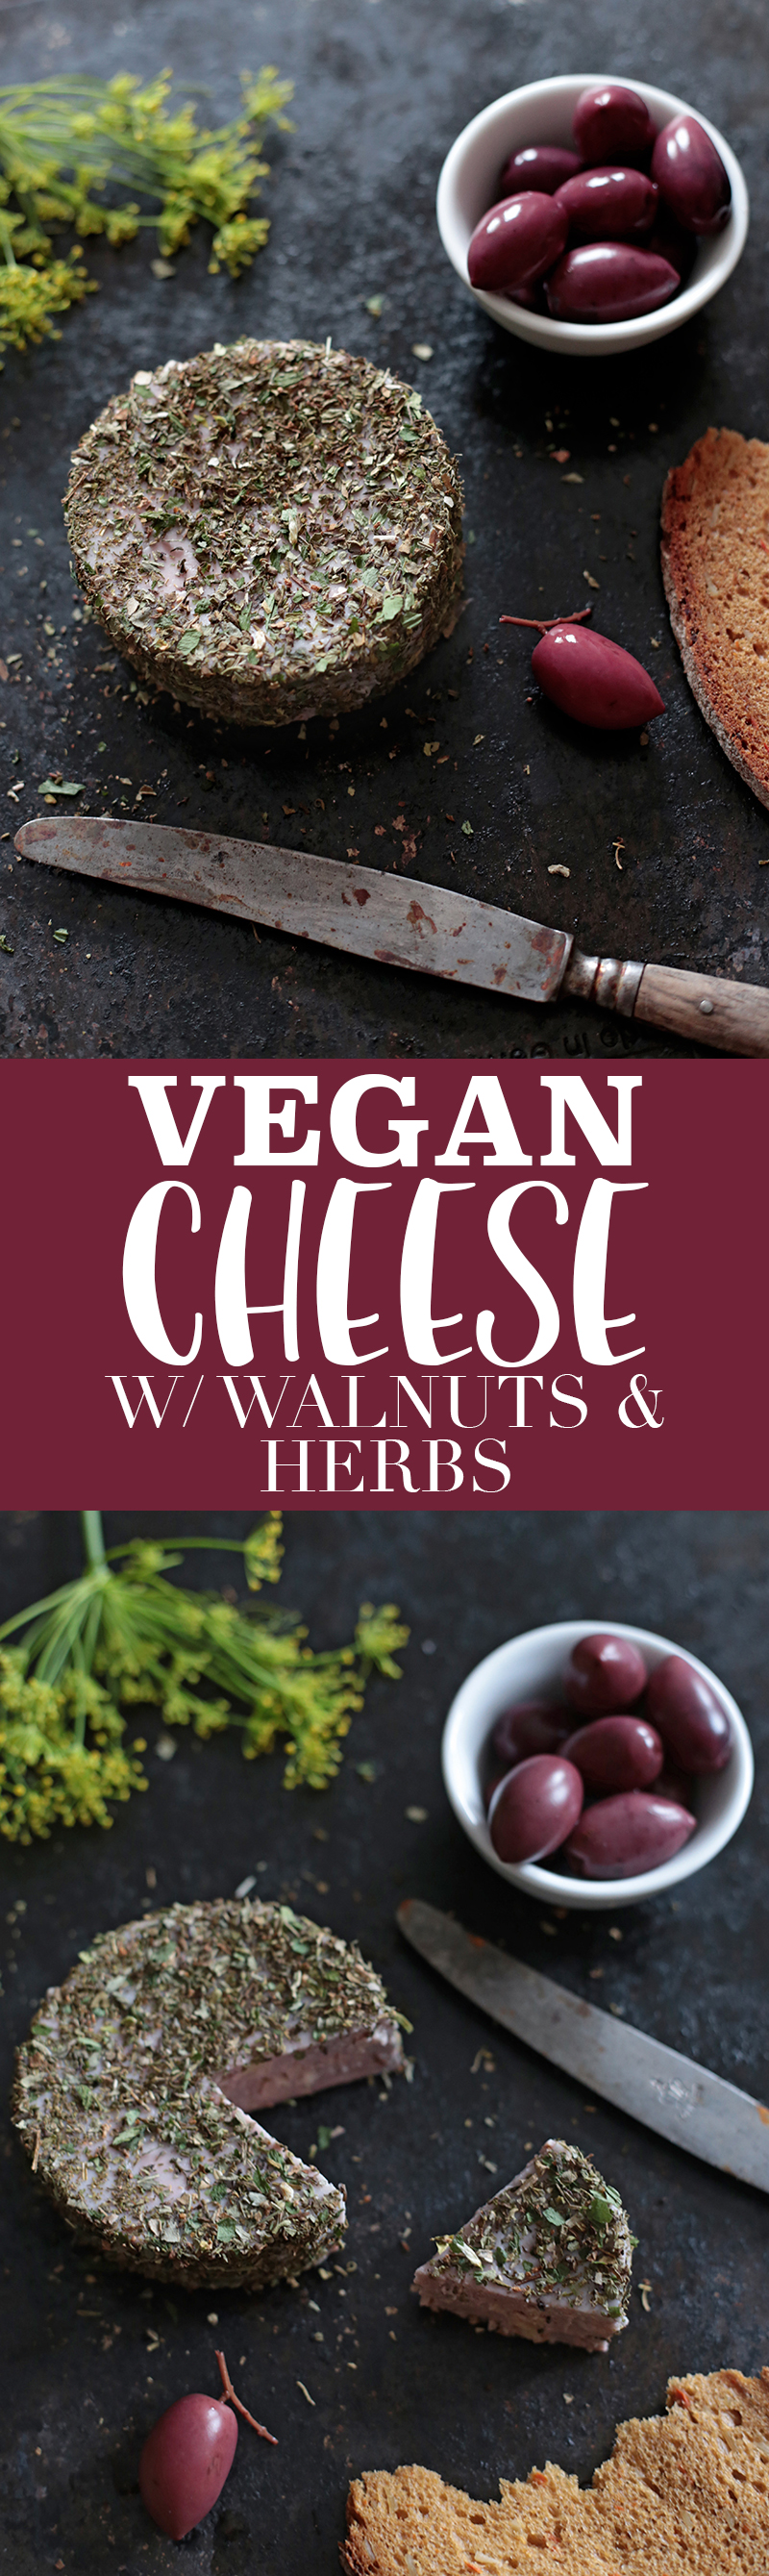 Walnut and Herb Vegan Cheese